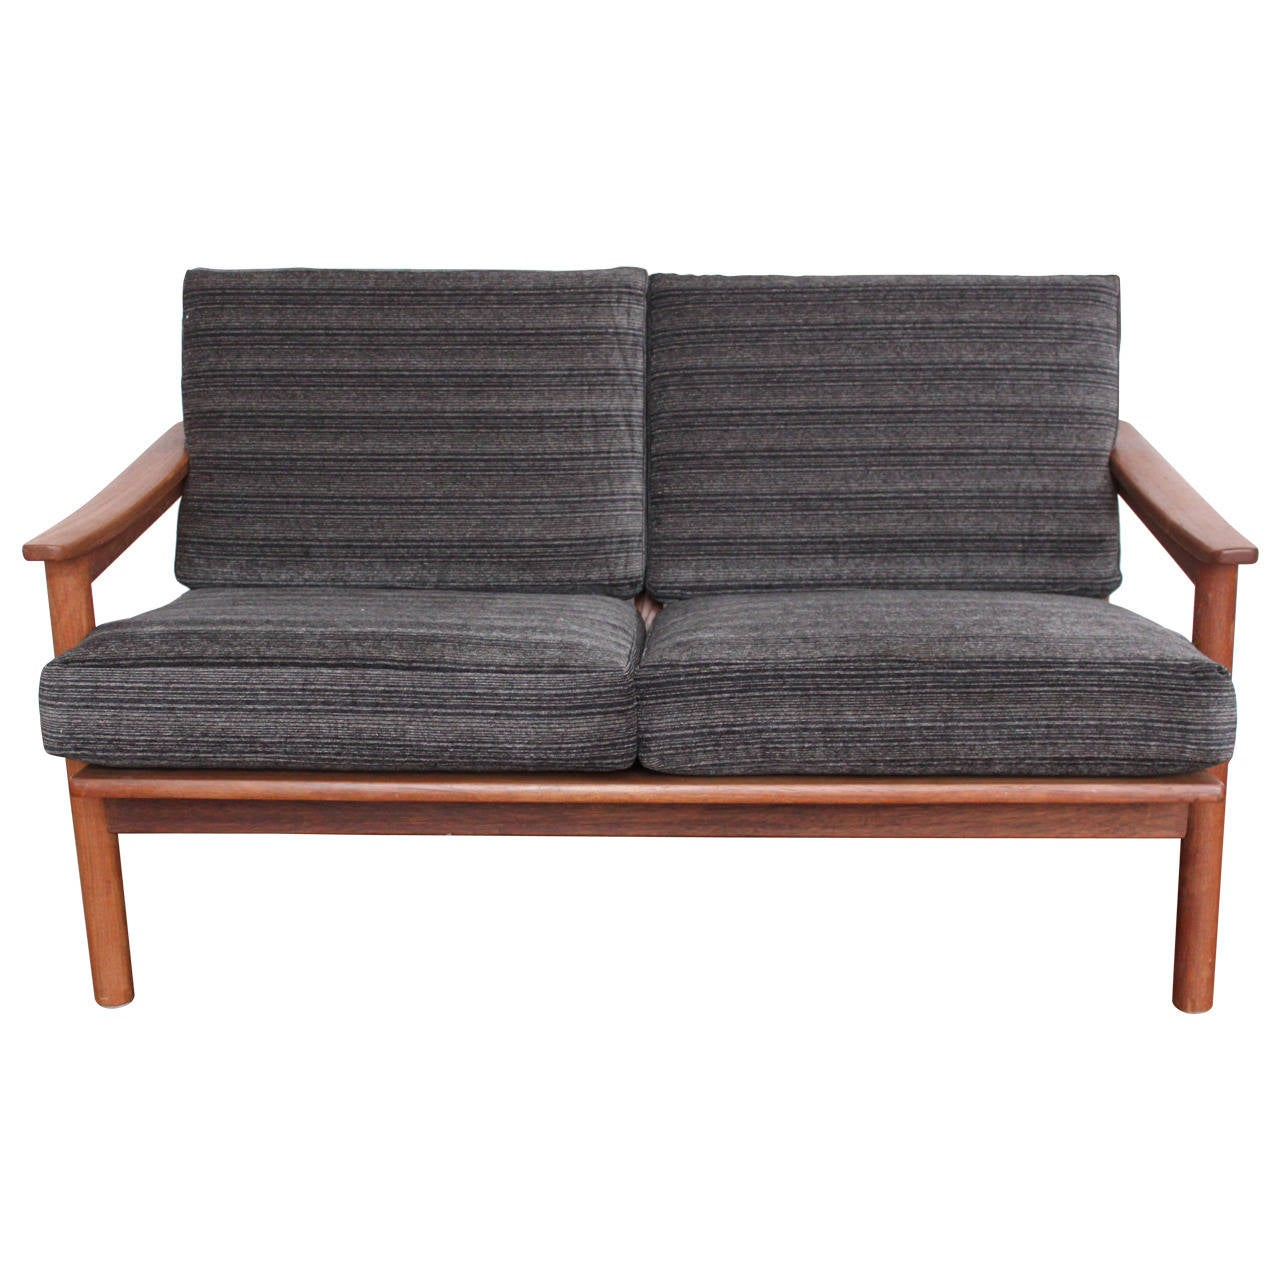 mid century modern danish teak loveseat sofa at 1stdibs. Black Bedroom Furniture Sets. Home Design Ideas